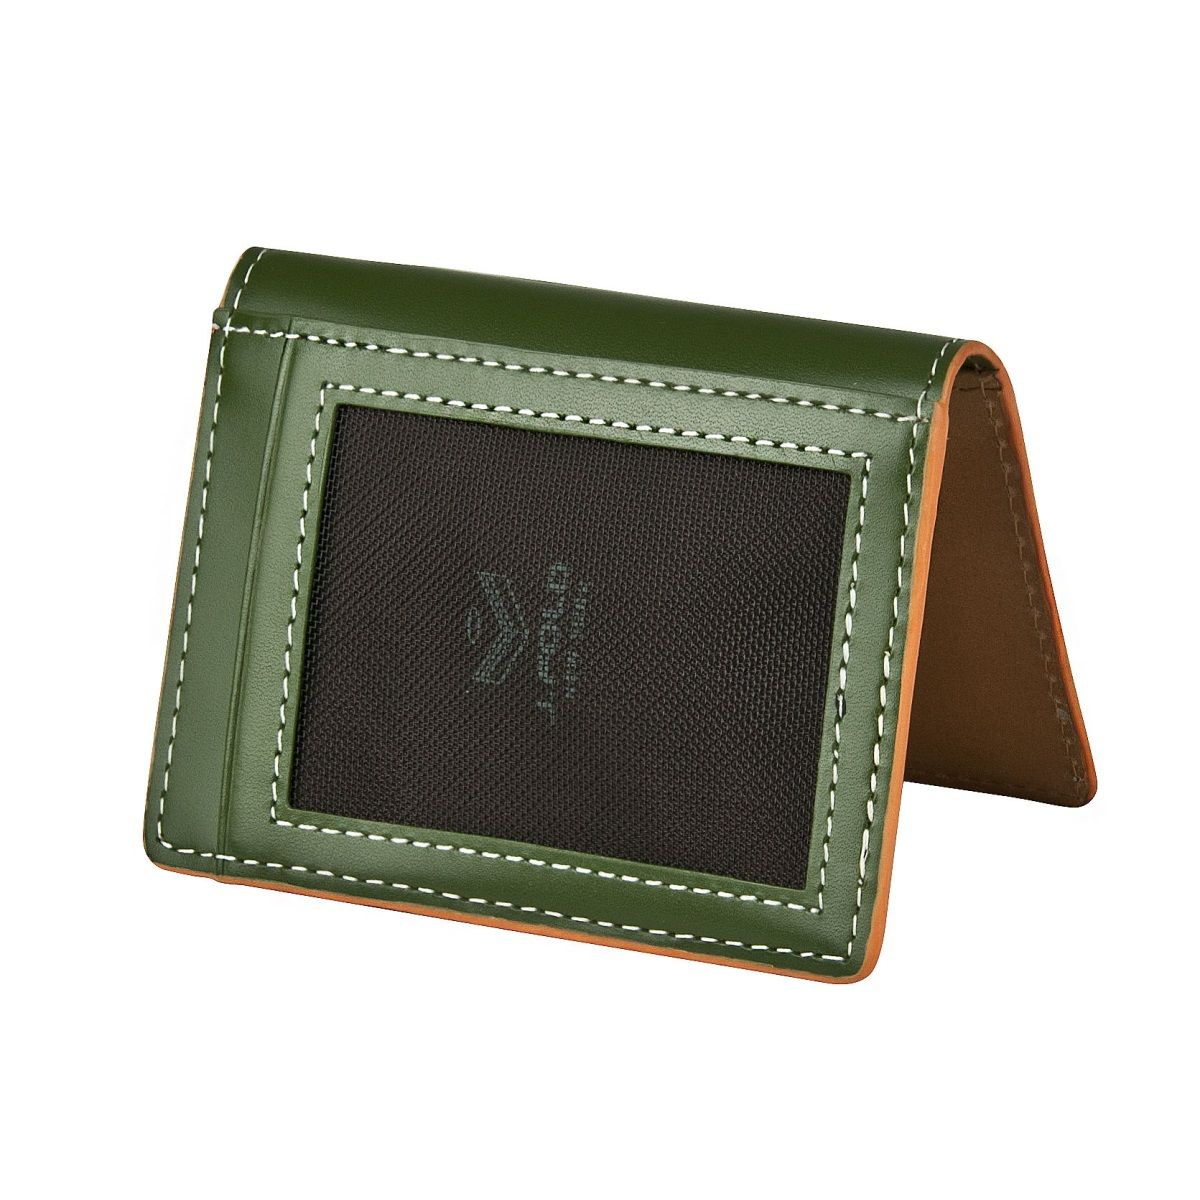 J.FOLD Folding Carrier Wallet - Green